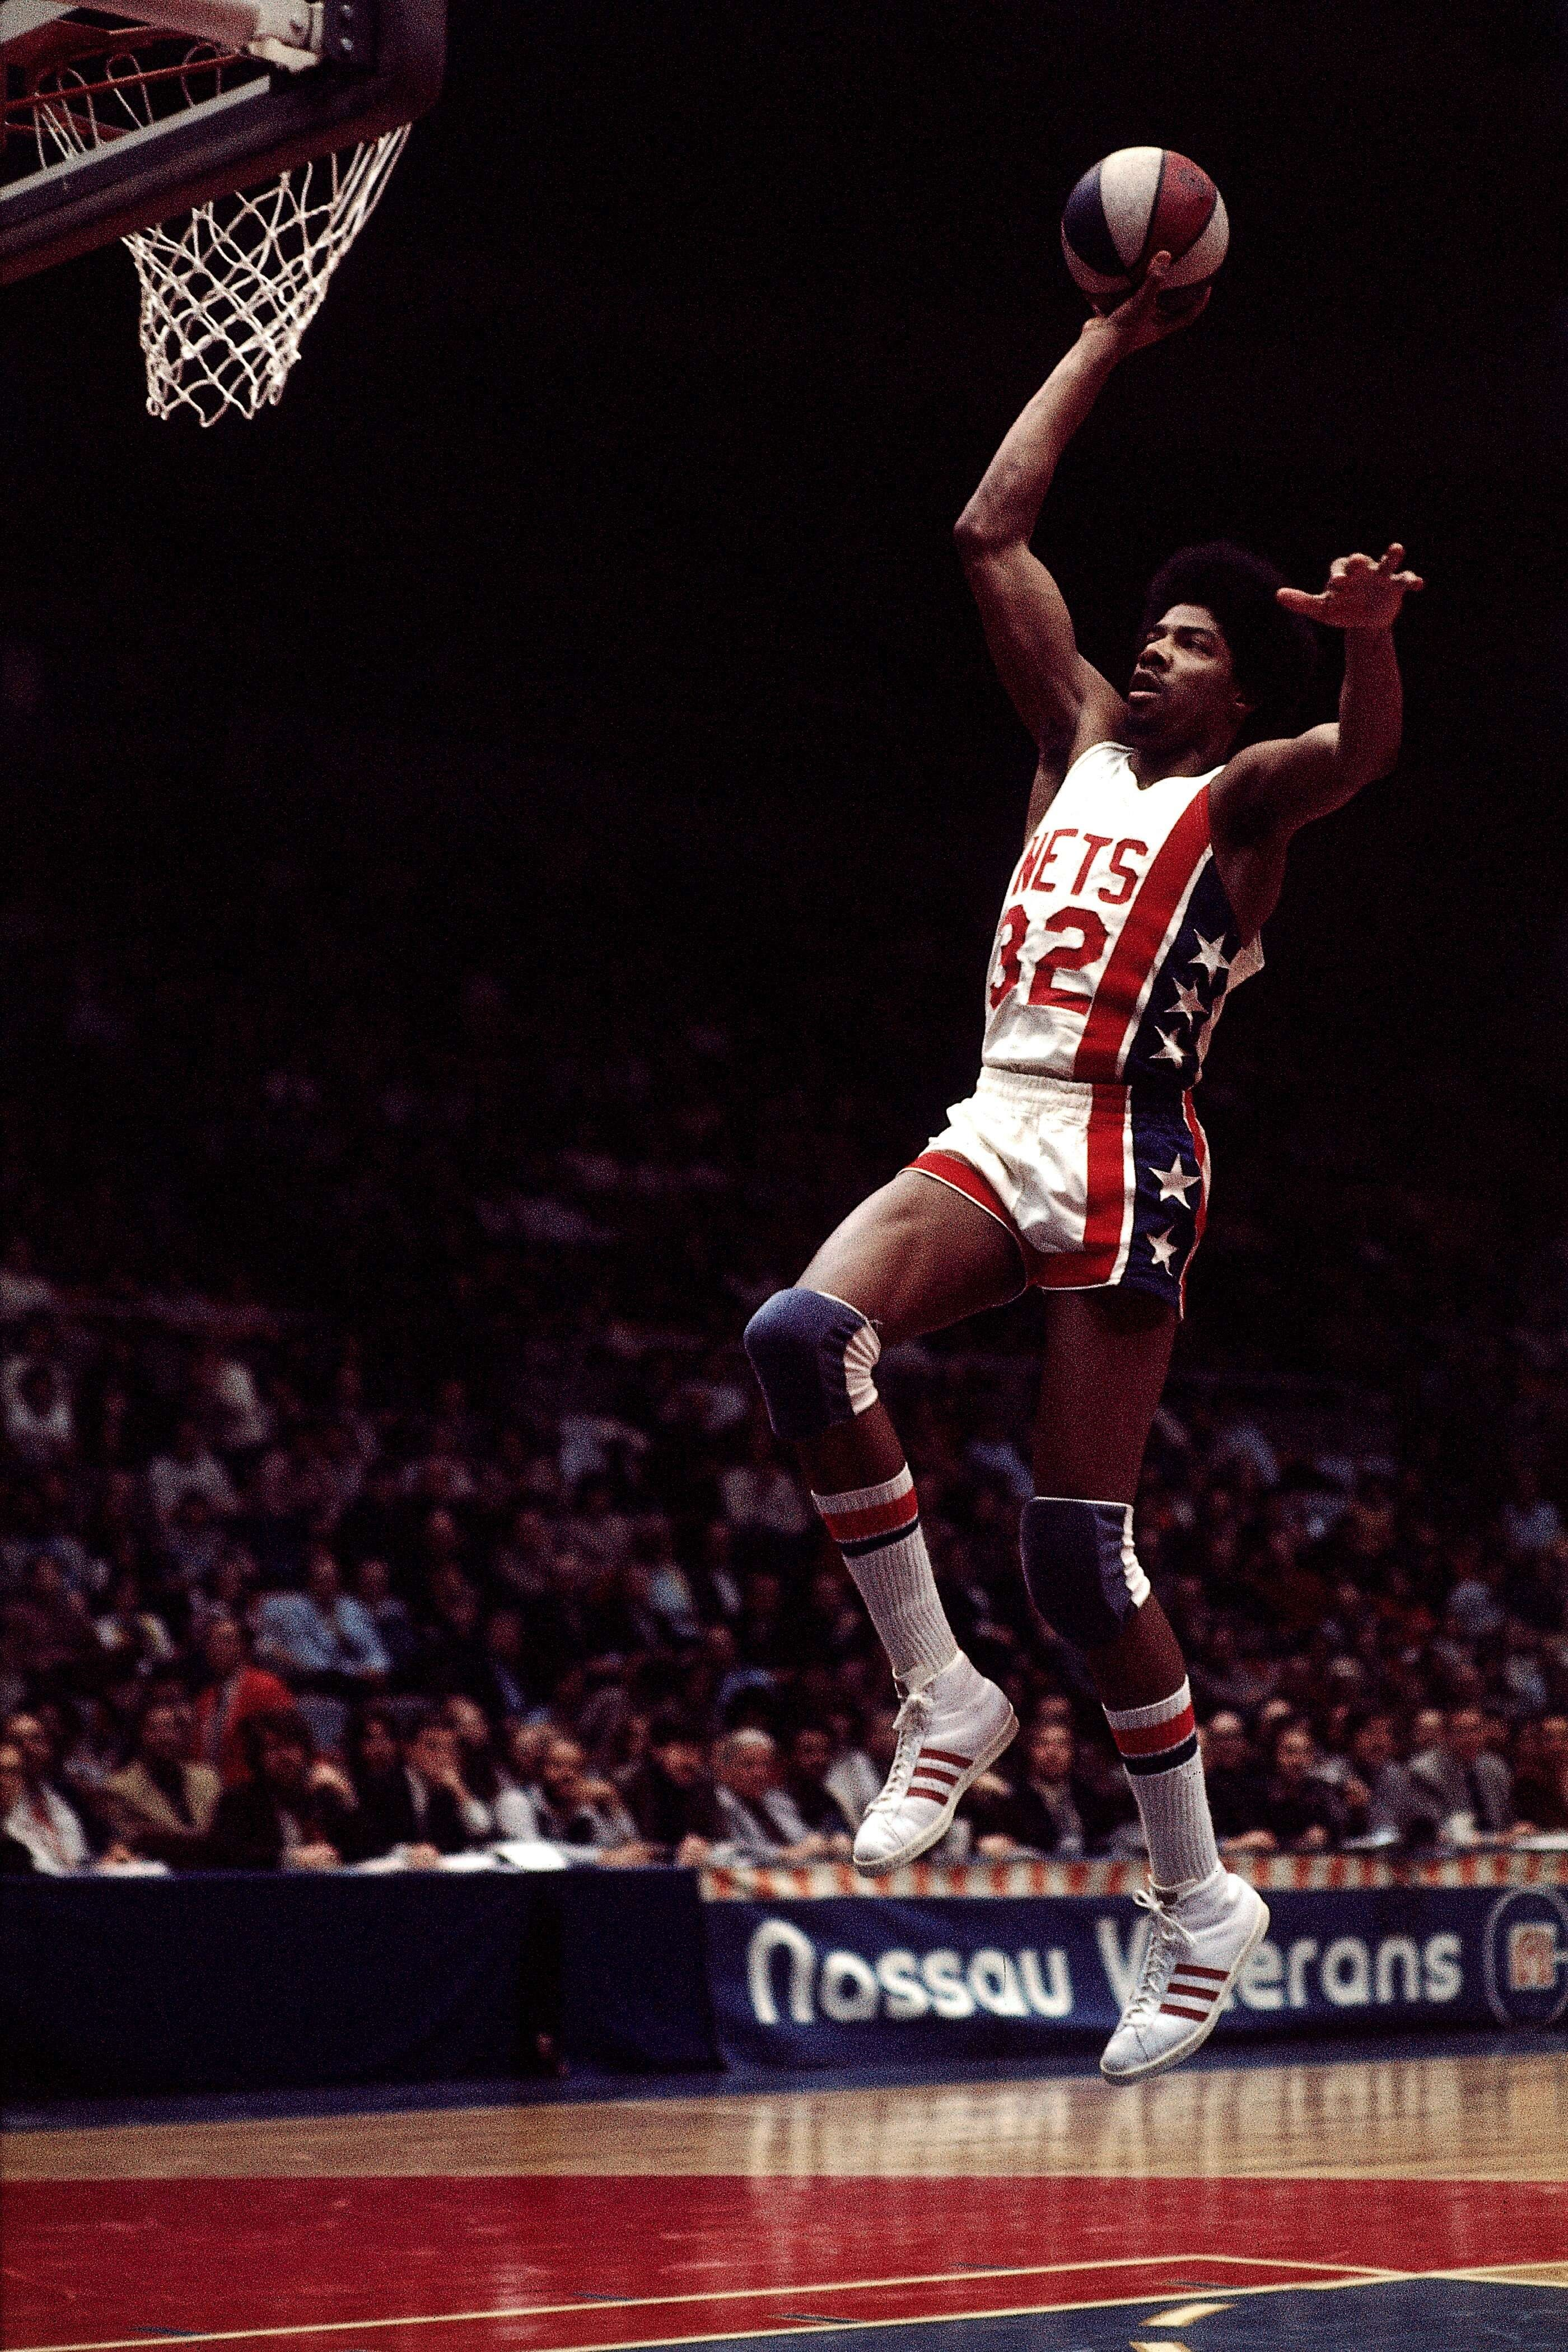 sports shoes 8ca10 dd1ce ... Explore Basketball History, Nba Basketball, and more! Image SEO all 2  Michael jordan dunk, post 22  Top Slam Dunk Contest Trendsetters ...